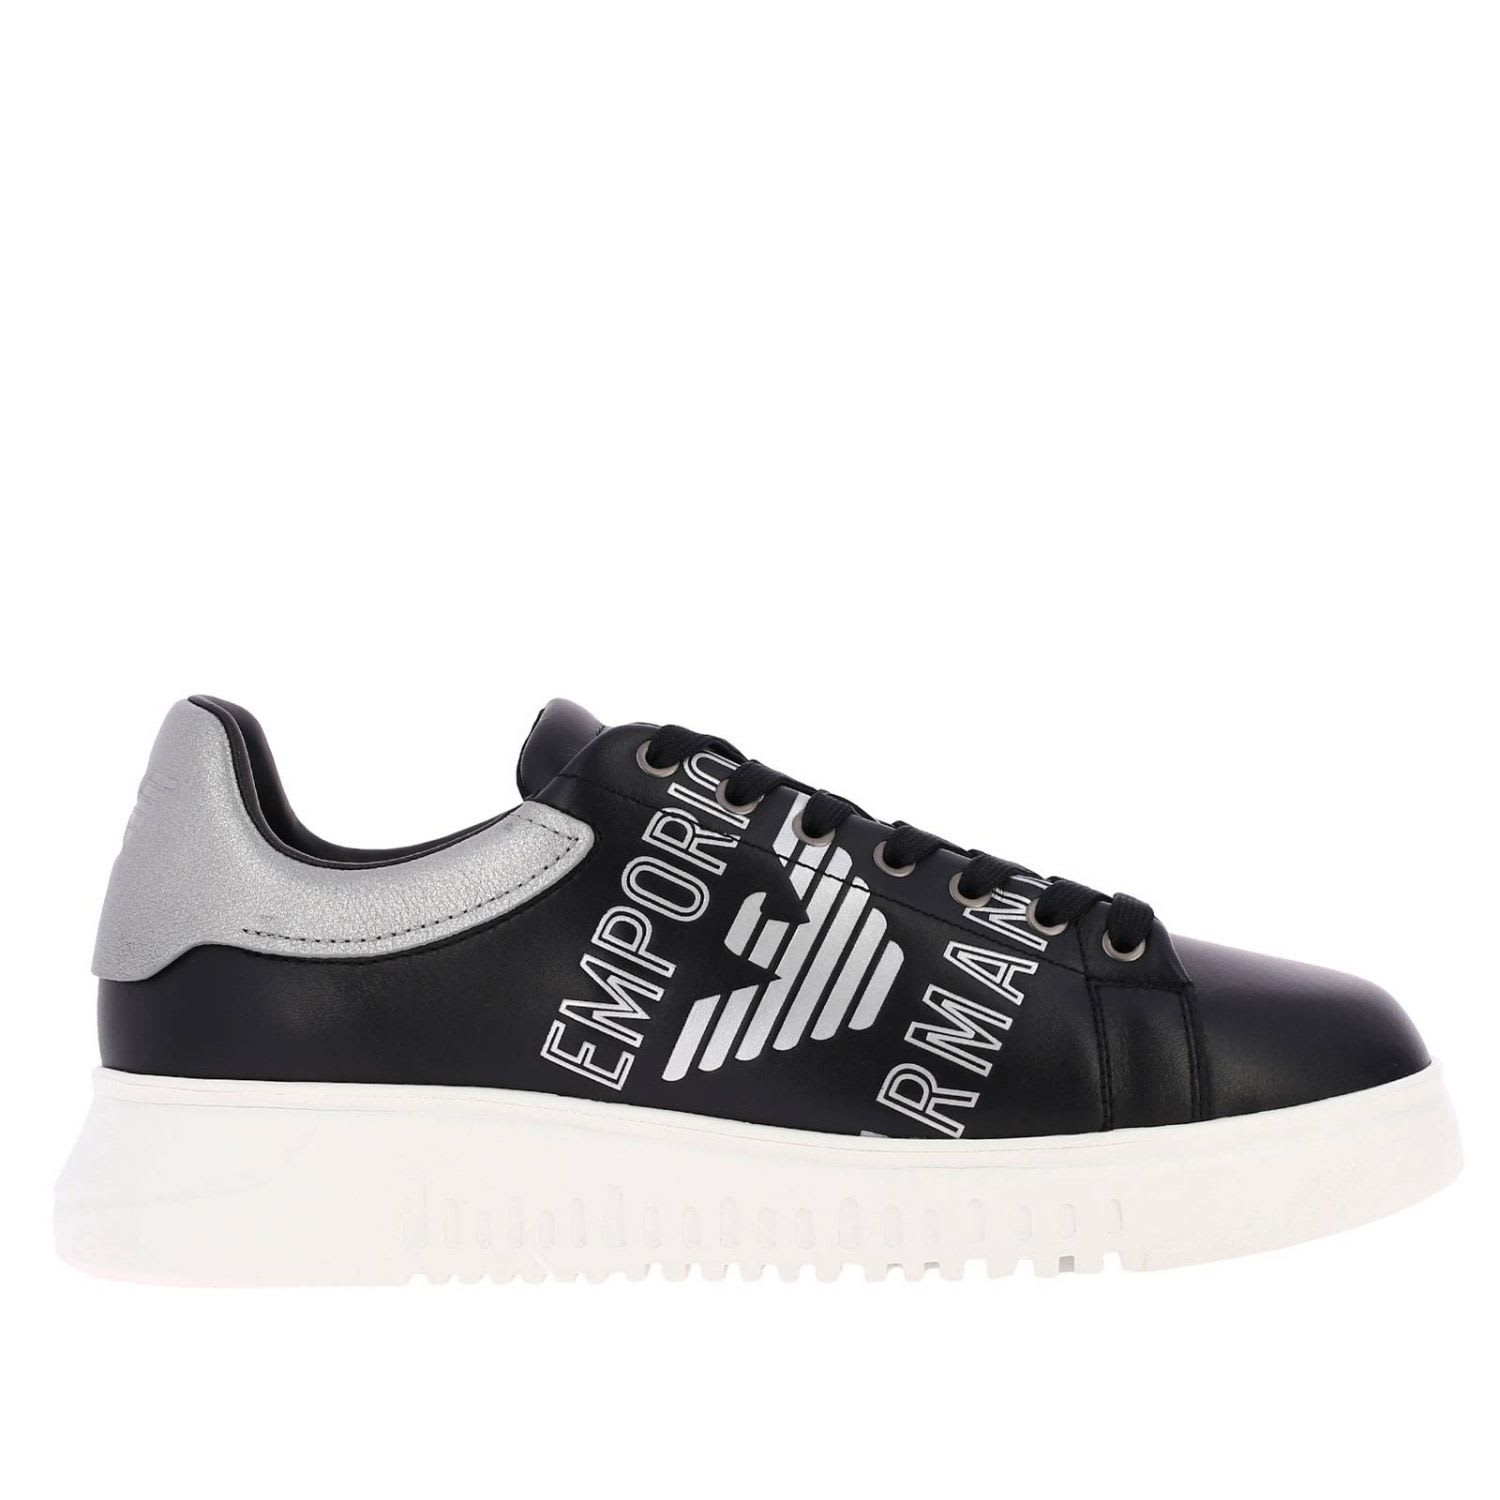 136dfb74 Emporio Armani Sneakers Lace-up Leather Sneakers With Laminated Emporio  Armani Logo